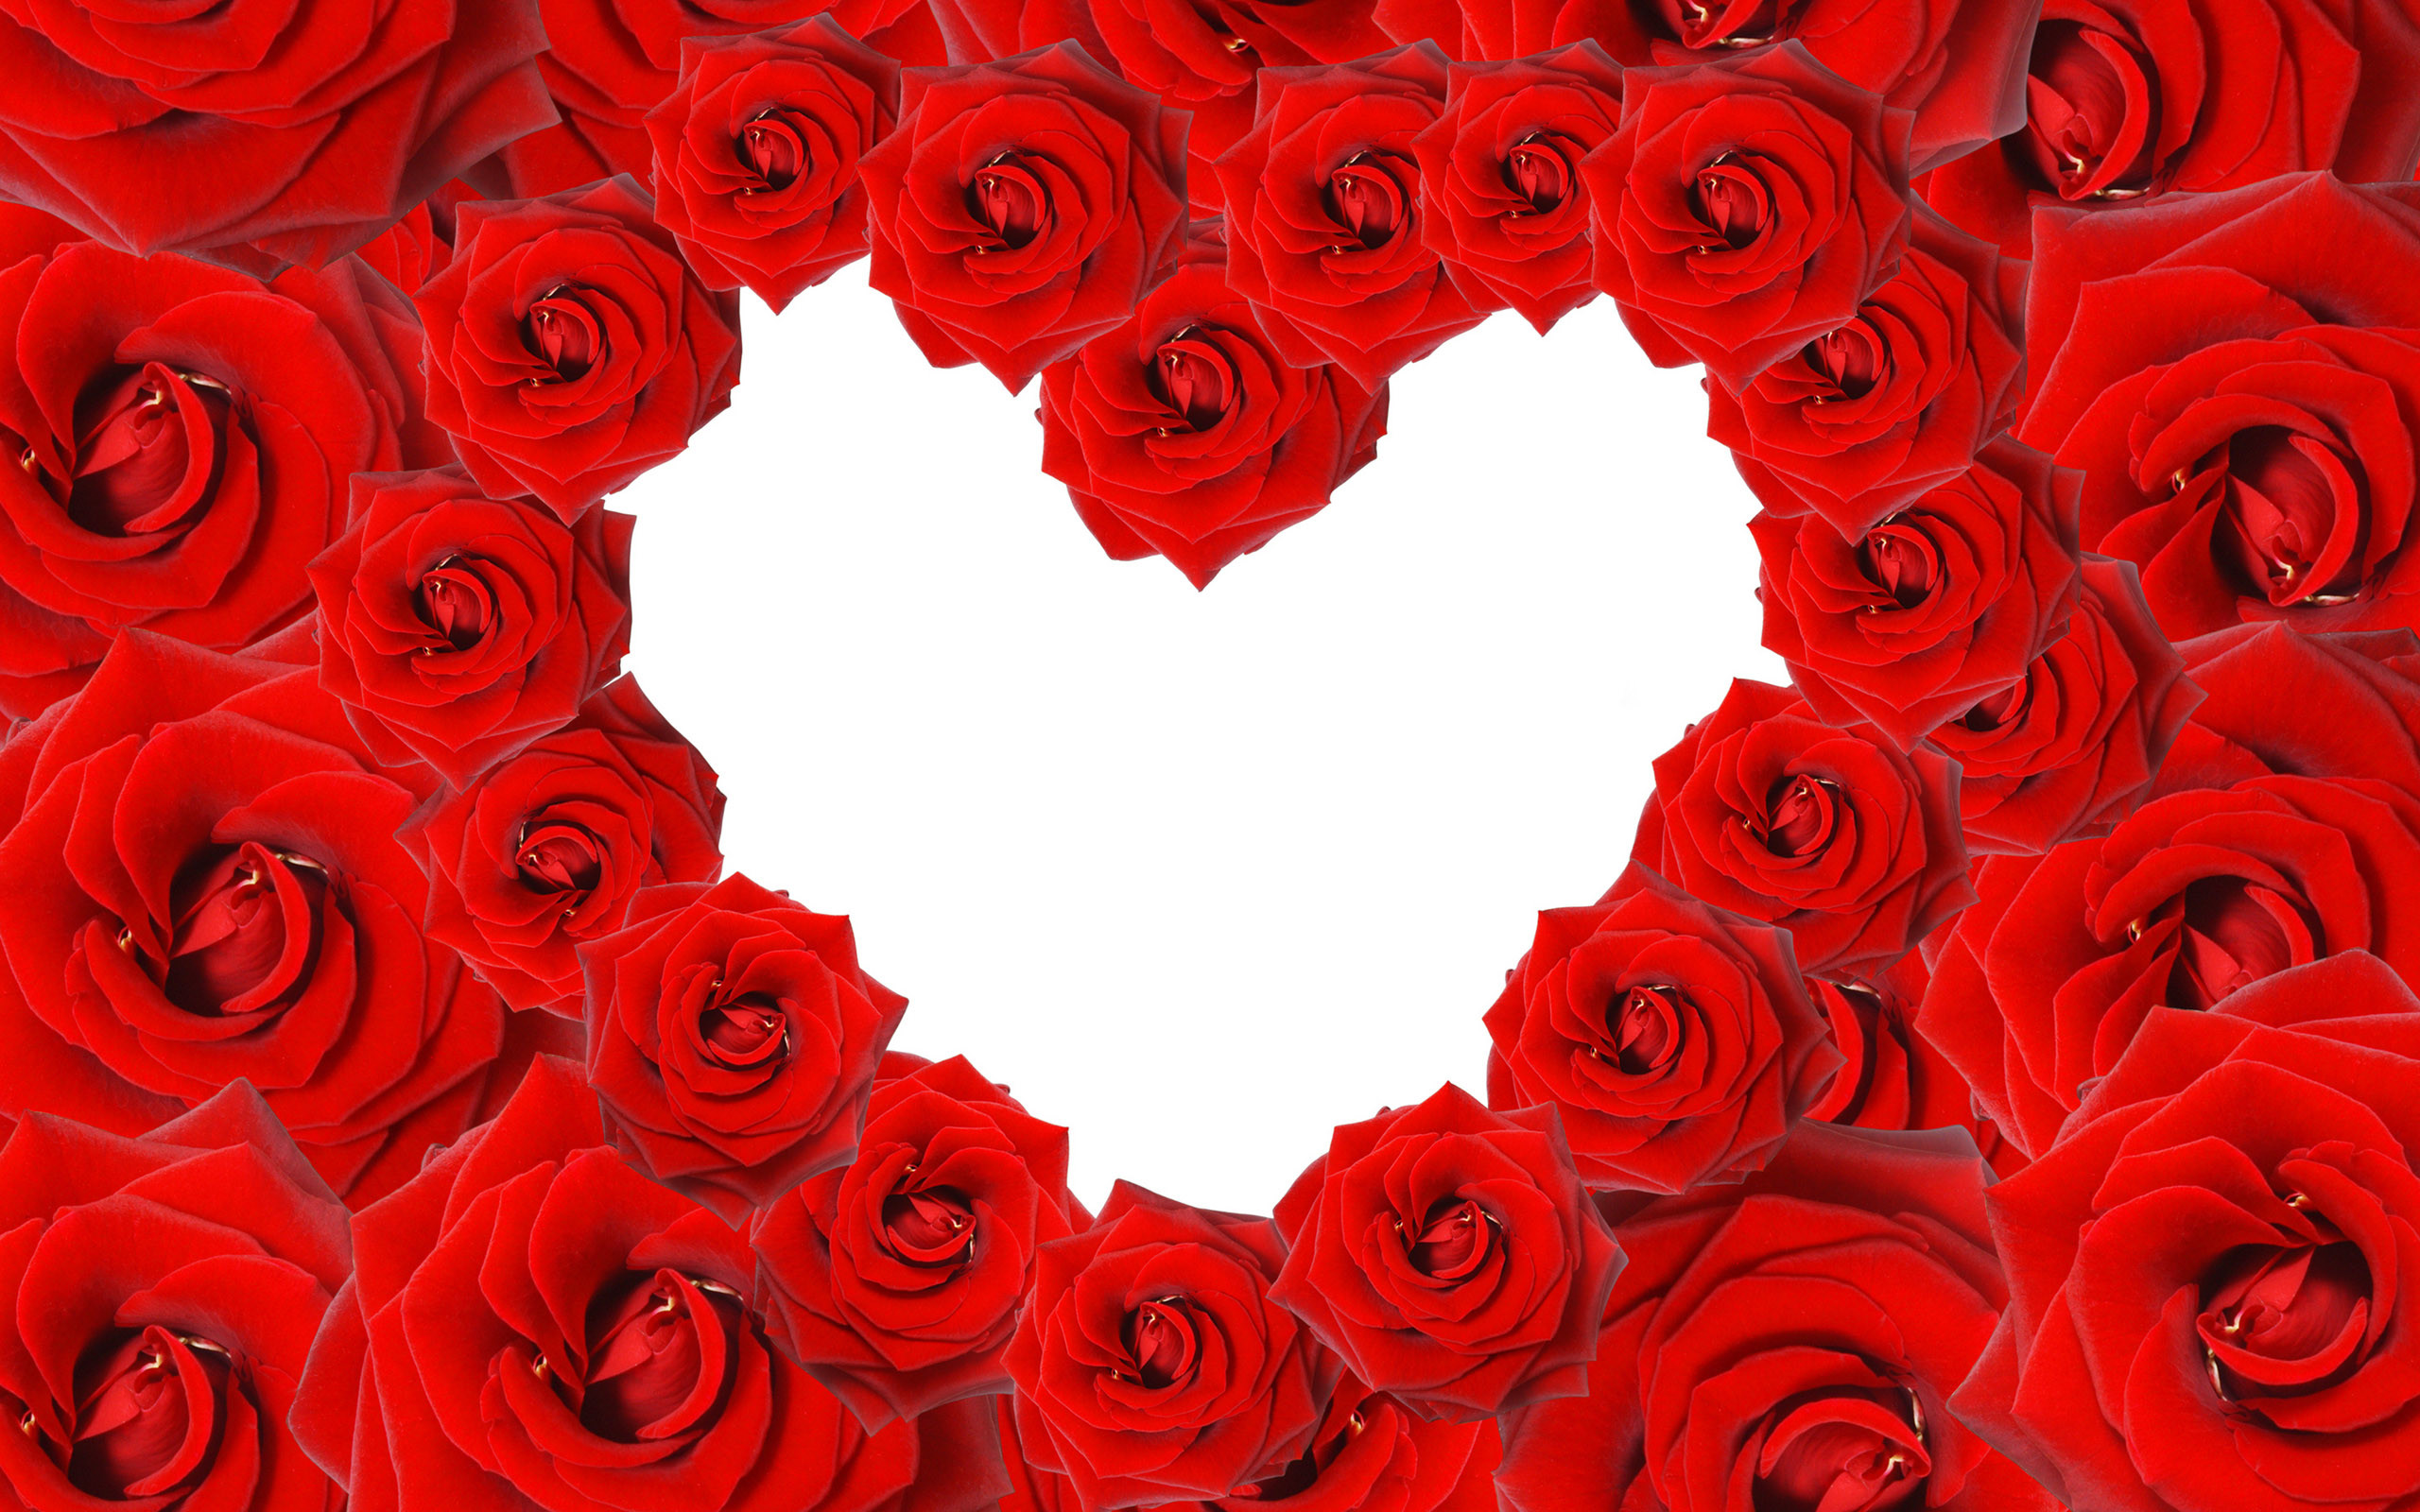 Red roses, HD